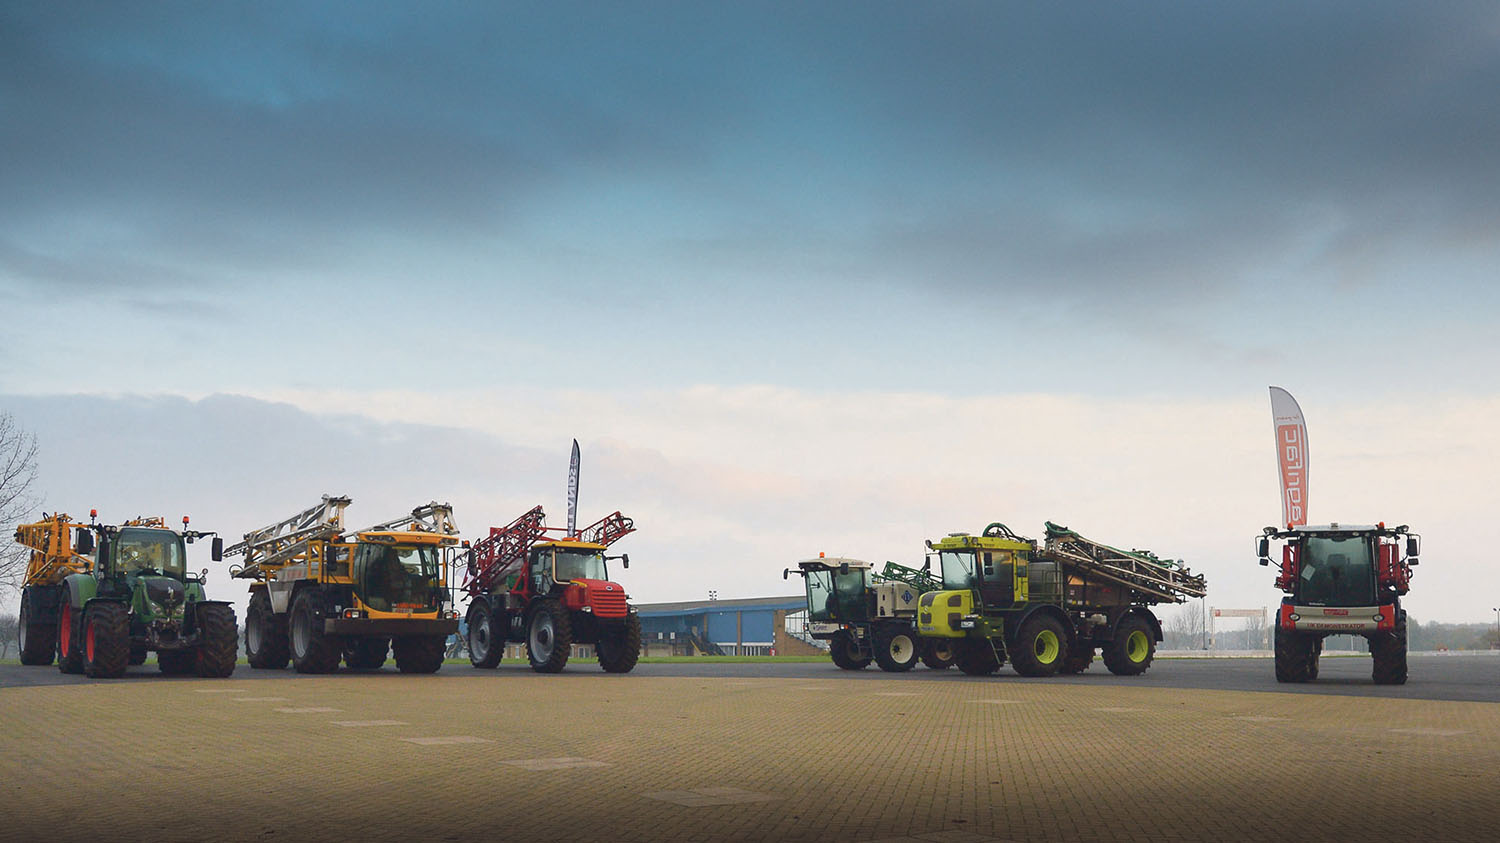 New spraying innovations demonstrated at CropTec 2014